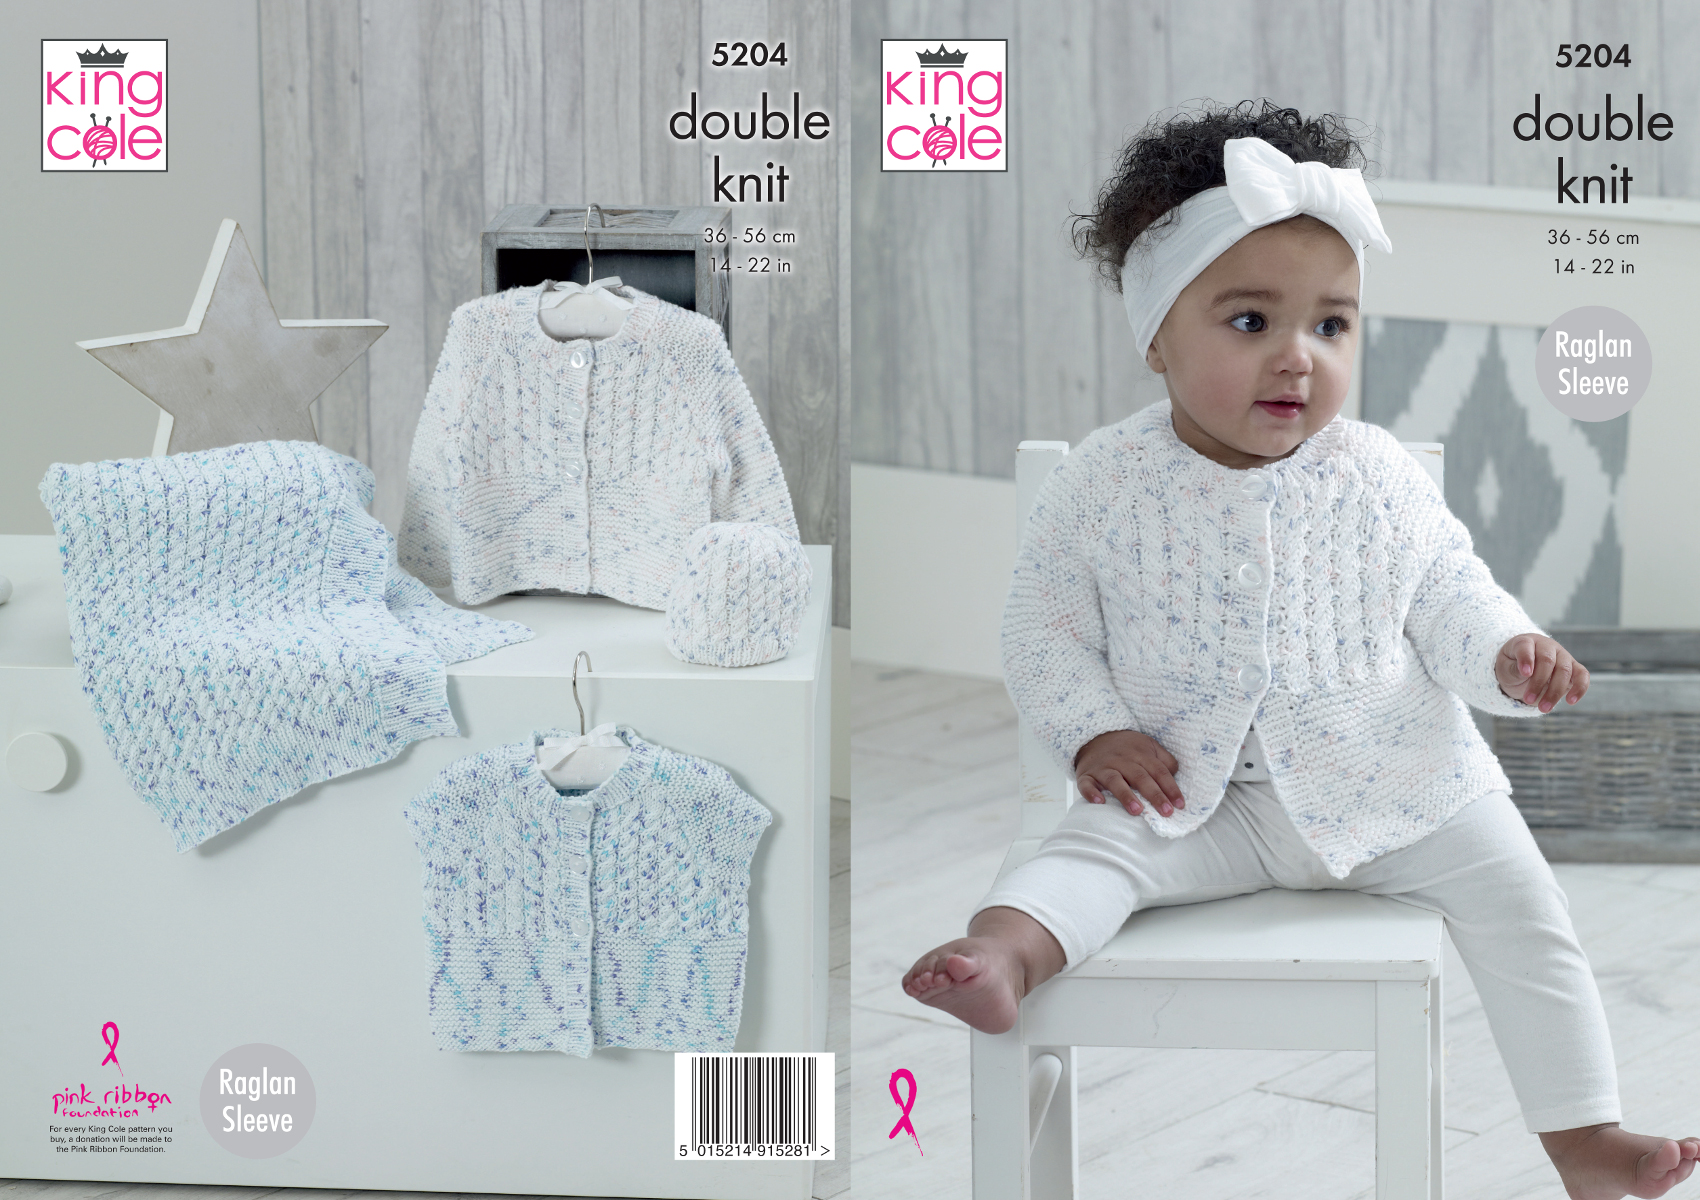 Not the finished items sizes 16-26in KINGCOLE 5420 Baby DK Knitting Pattern